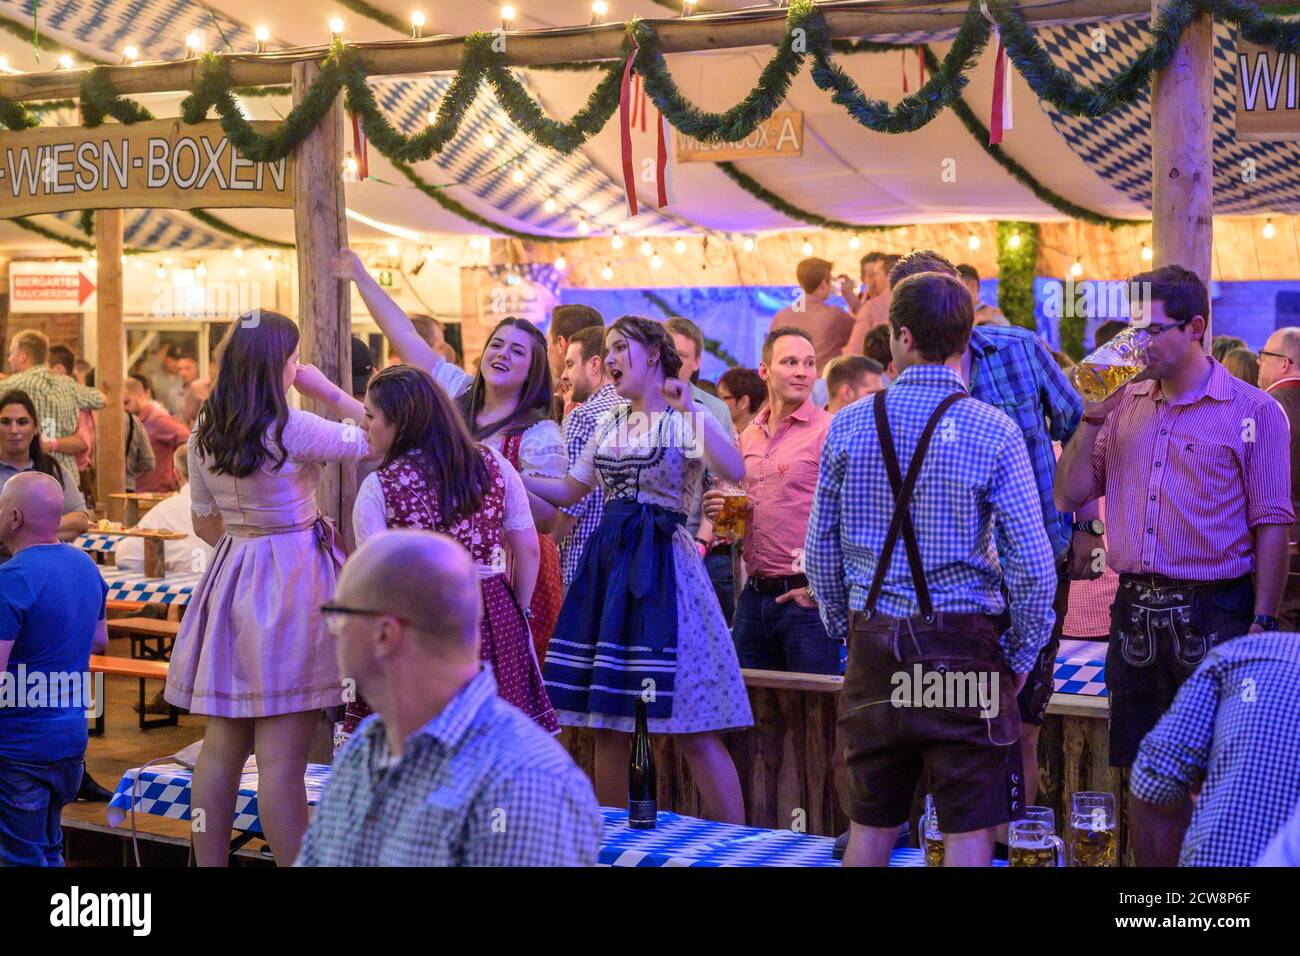 Koblenz Germany 27.09.2019 people party at Oktoberfest in europe during a concert Typical beer tent scene. Stock Photo